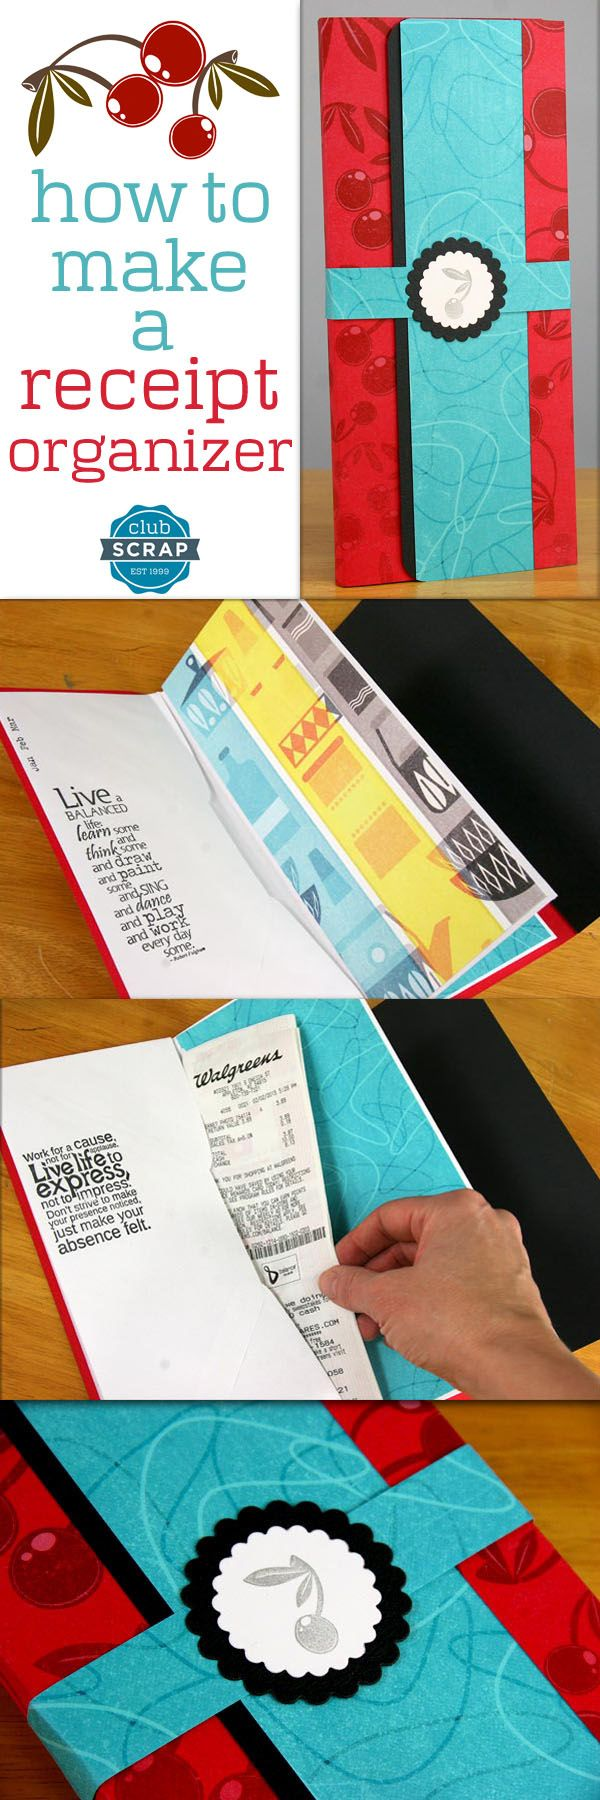 Receipt Organizer | Club Scrap -- Ten simple steps using envelopes and cardstock to help you get organized. Click to find out how to easily create your own!